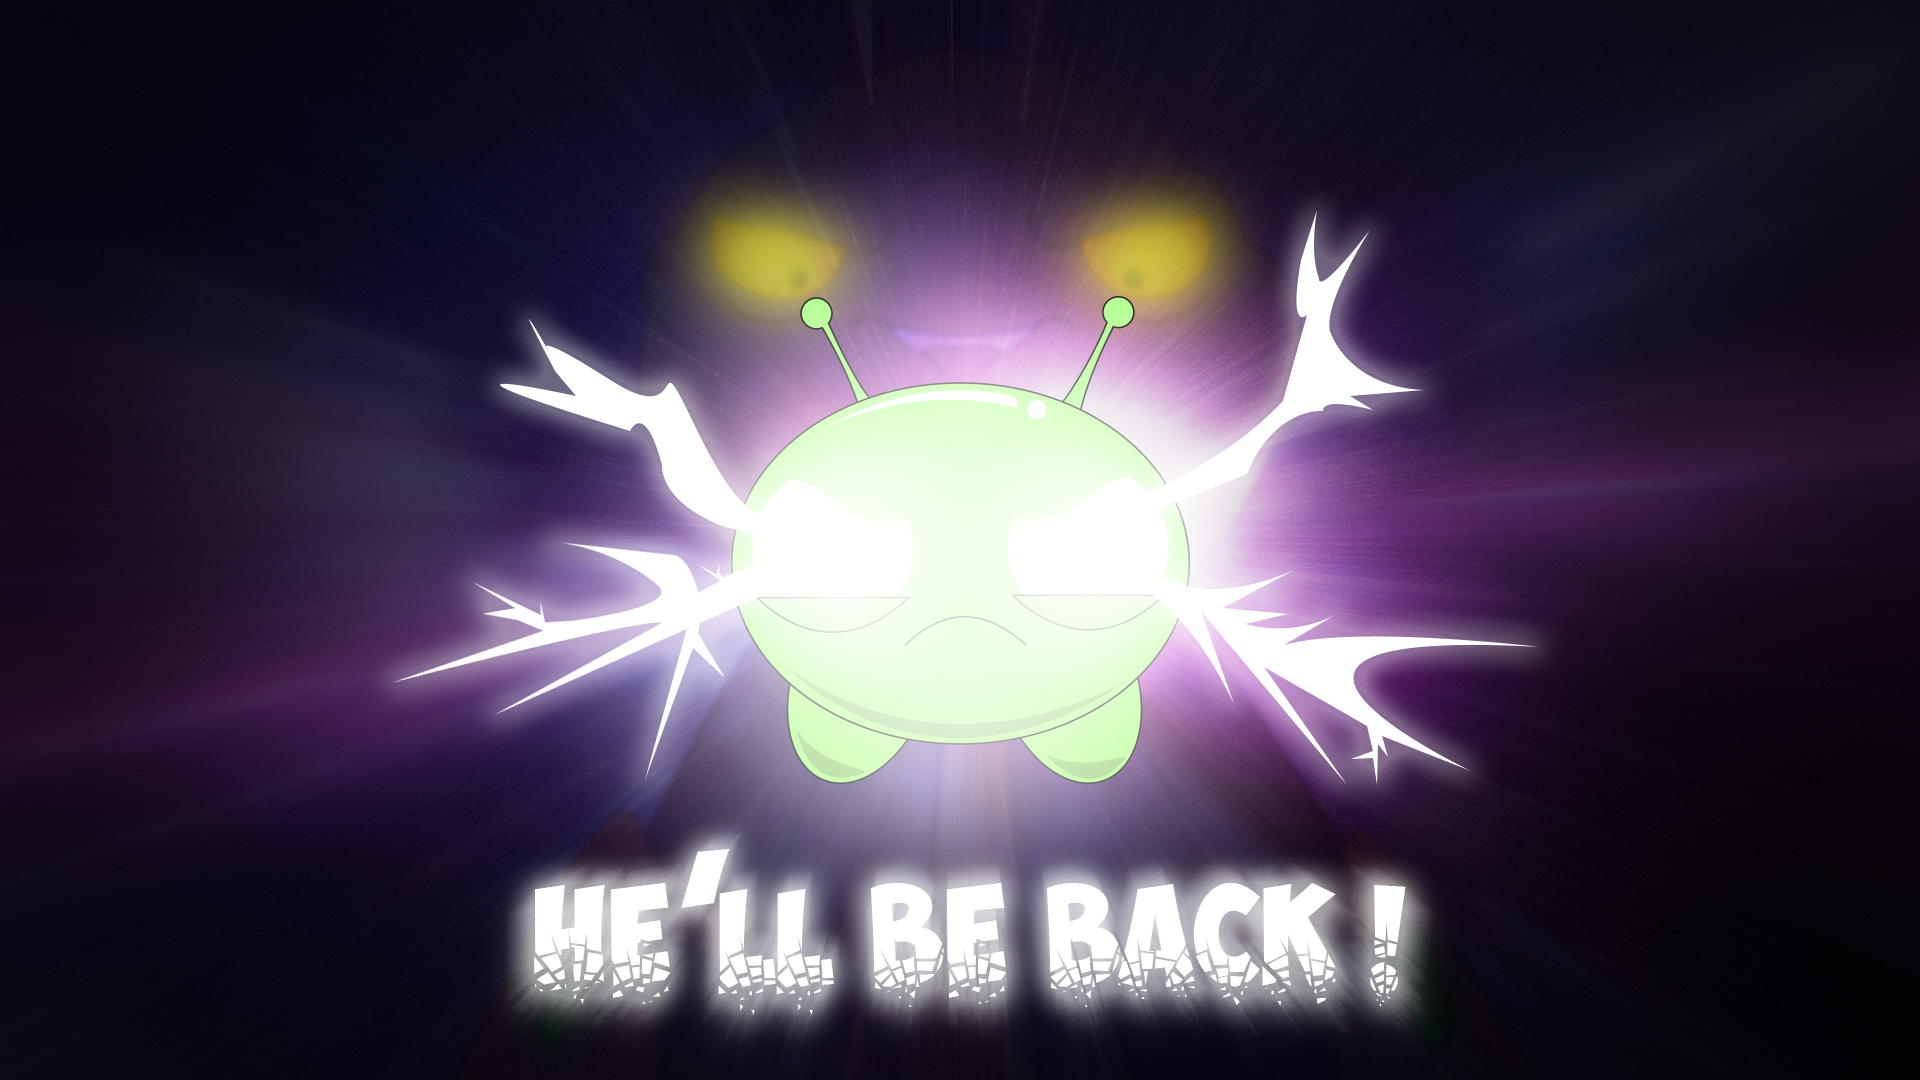 Final Space will be back